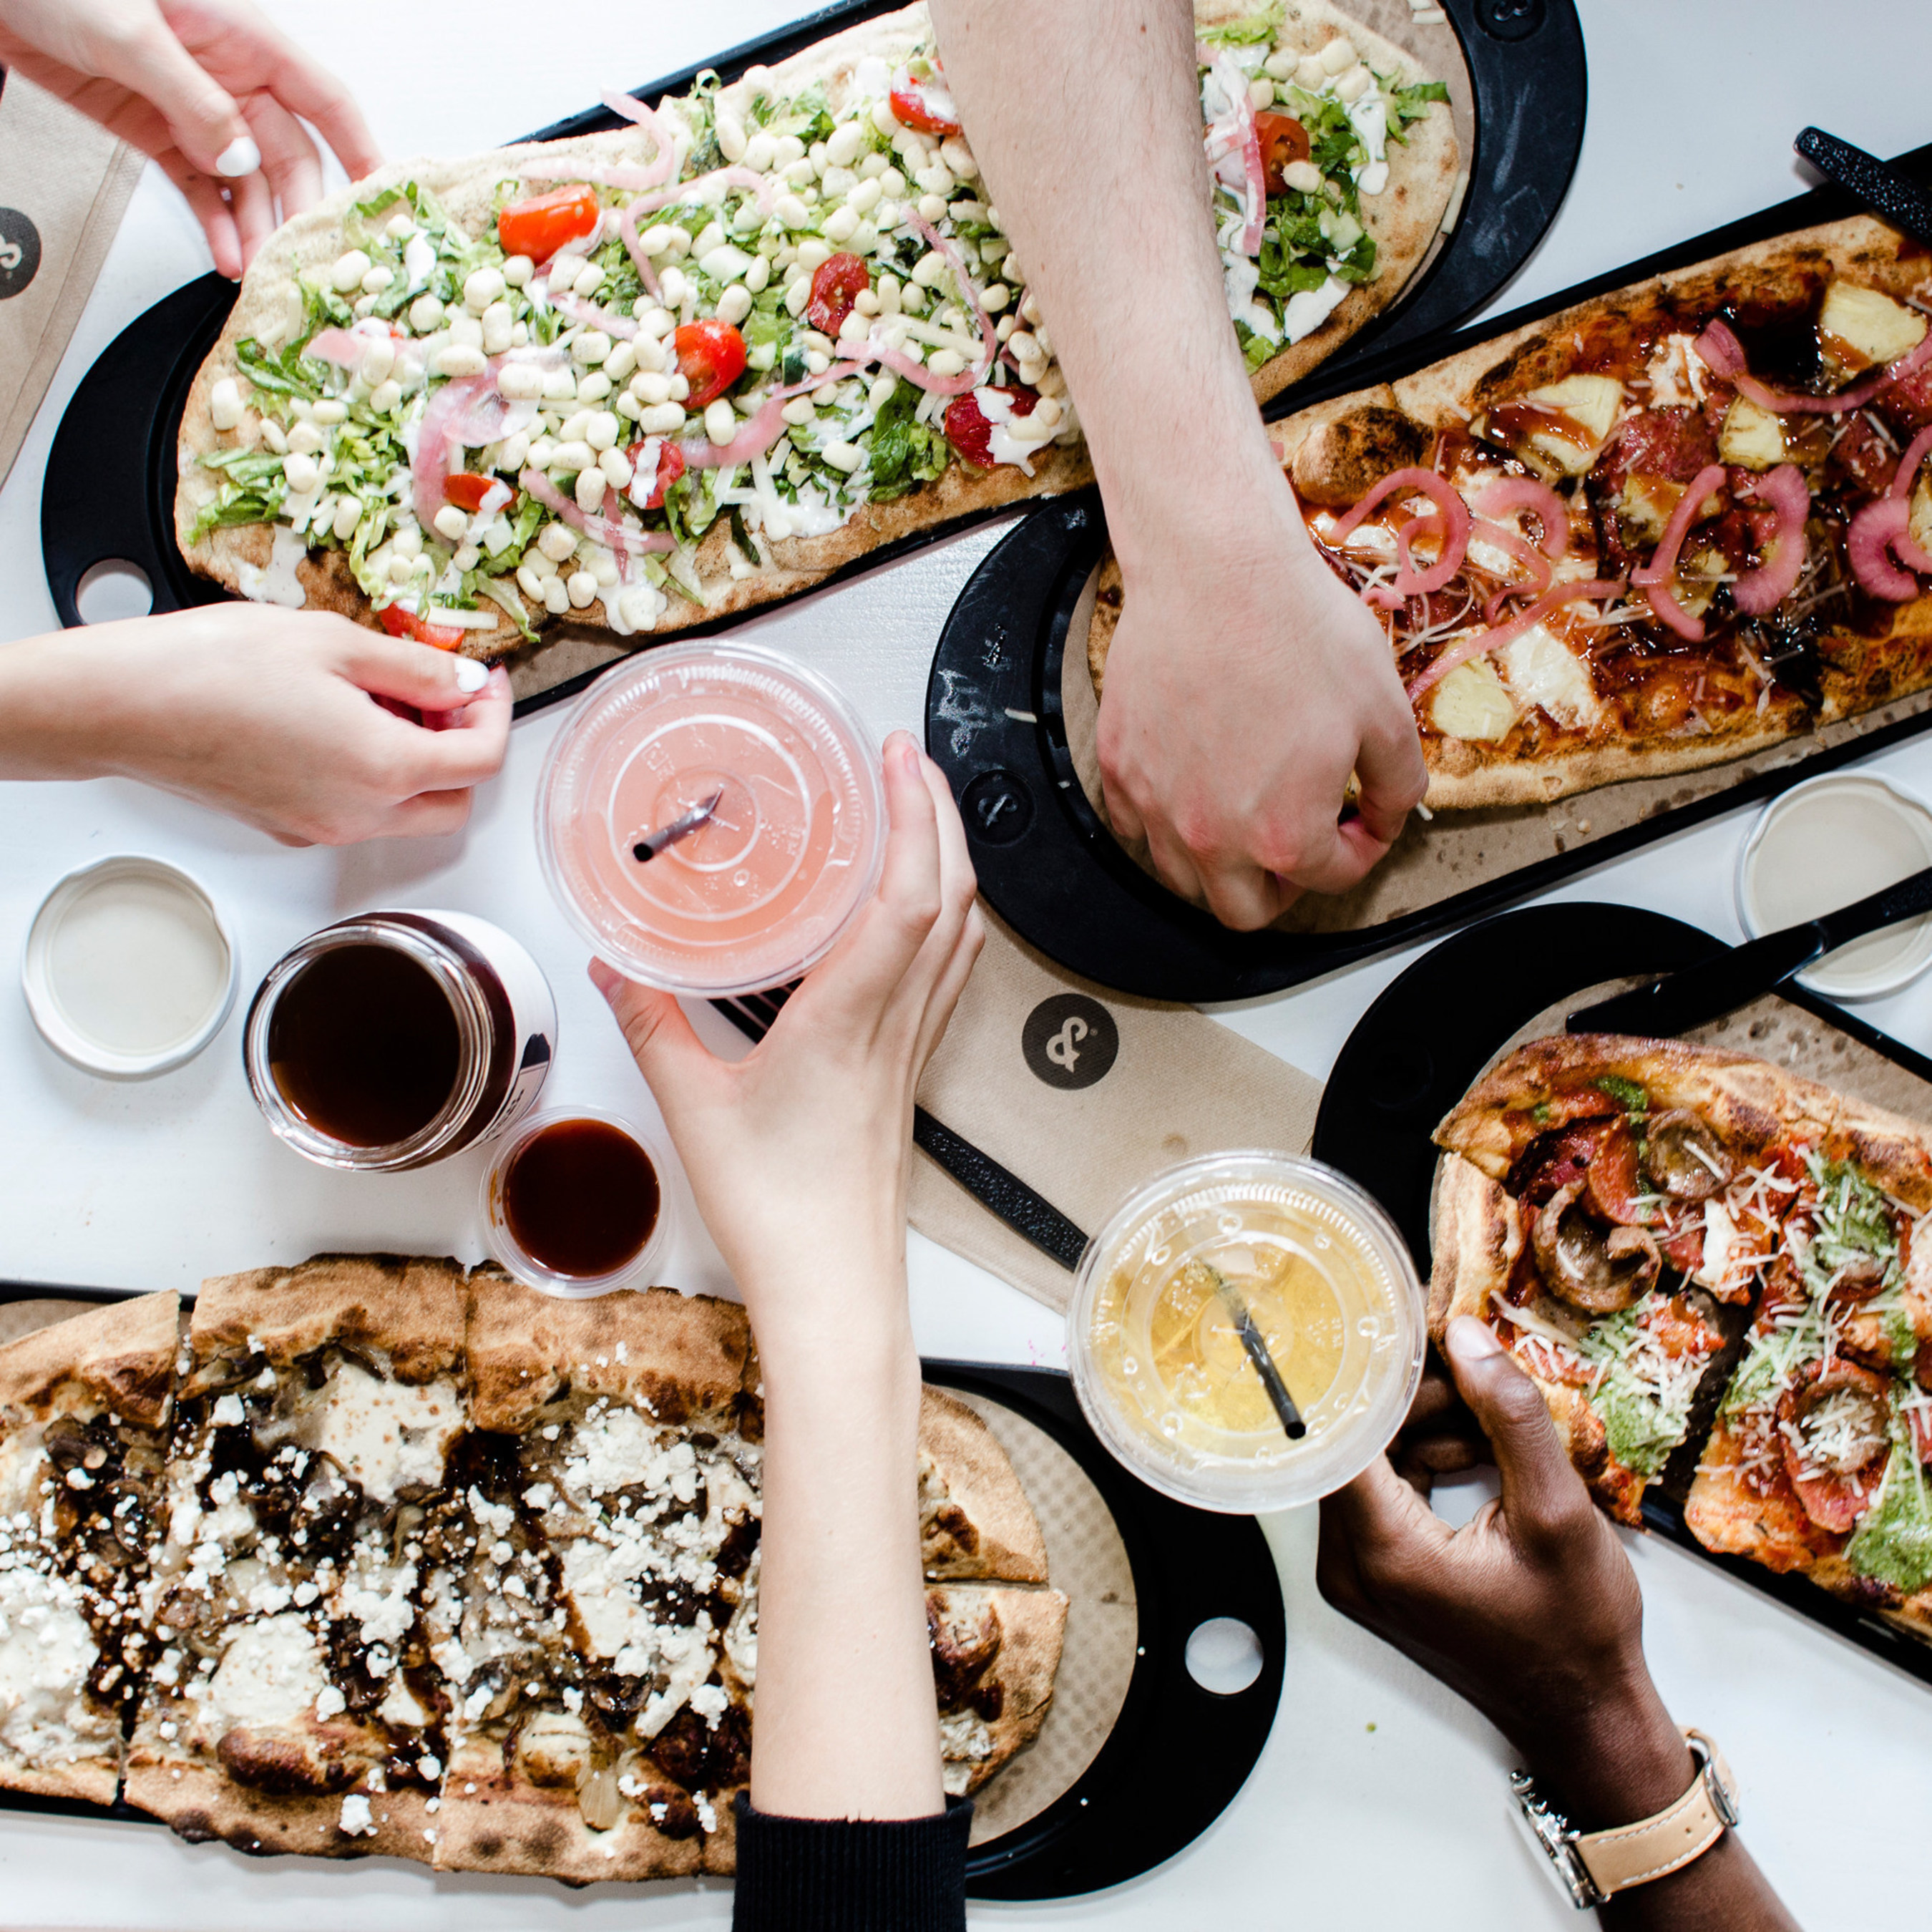 &pizza is the counterculture brand known for its critically acclaimed pizza and craft beverages, ampersand-tattooed employees (the Tribe), and fight for a living wage.